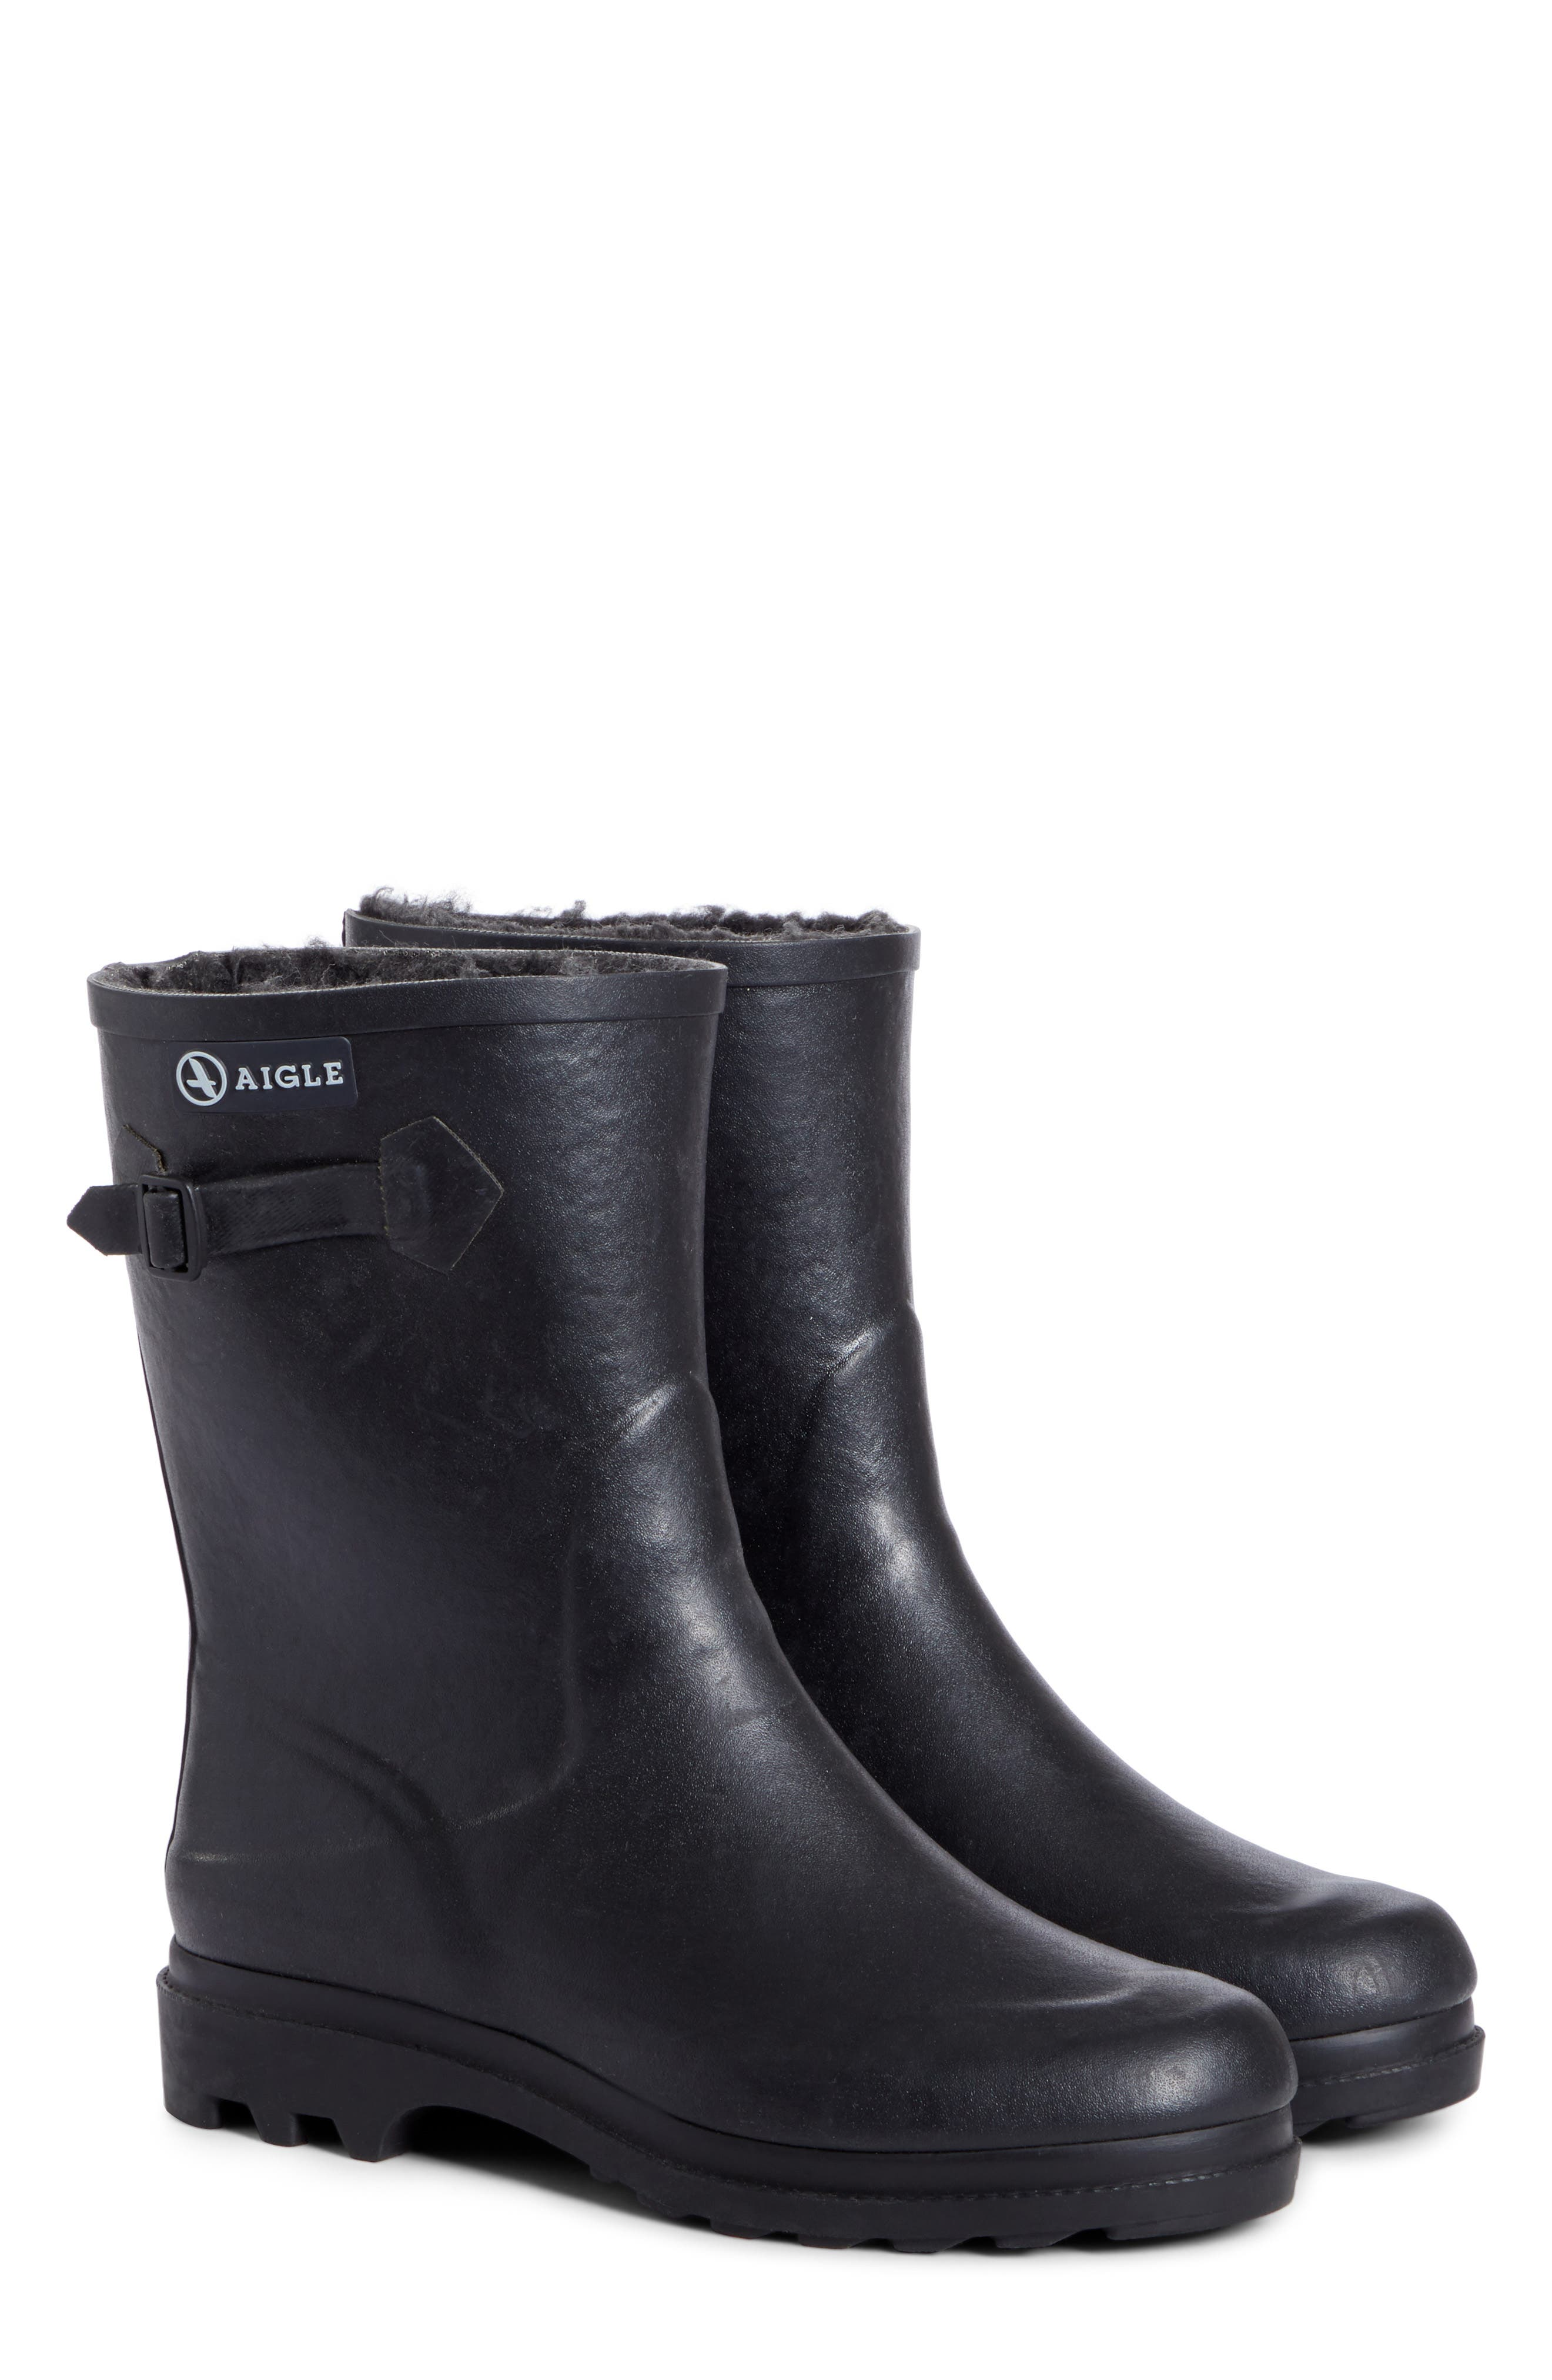 Icare Waterproof Rubber Ankle Boot with Faux Fur Lining,                             Alternate thumbnail 2, color,                             NOIR